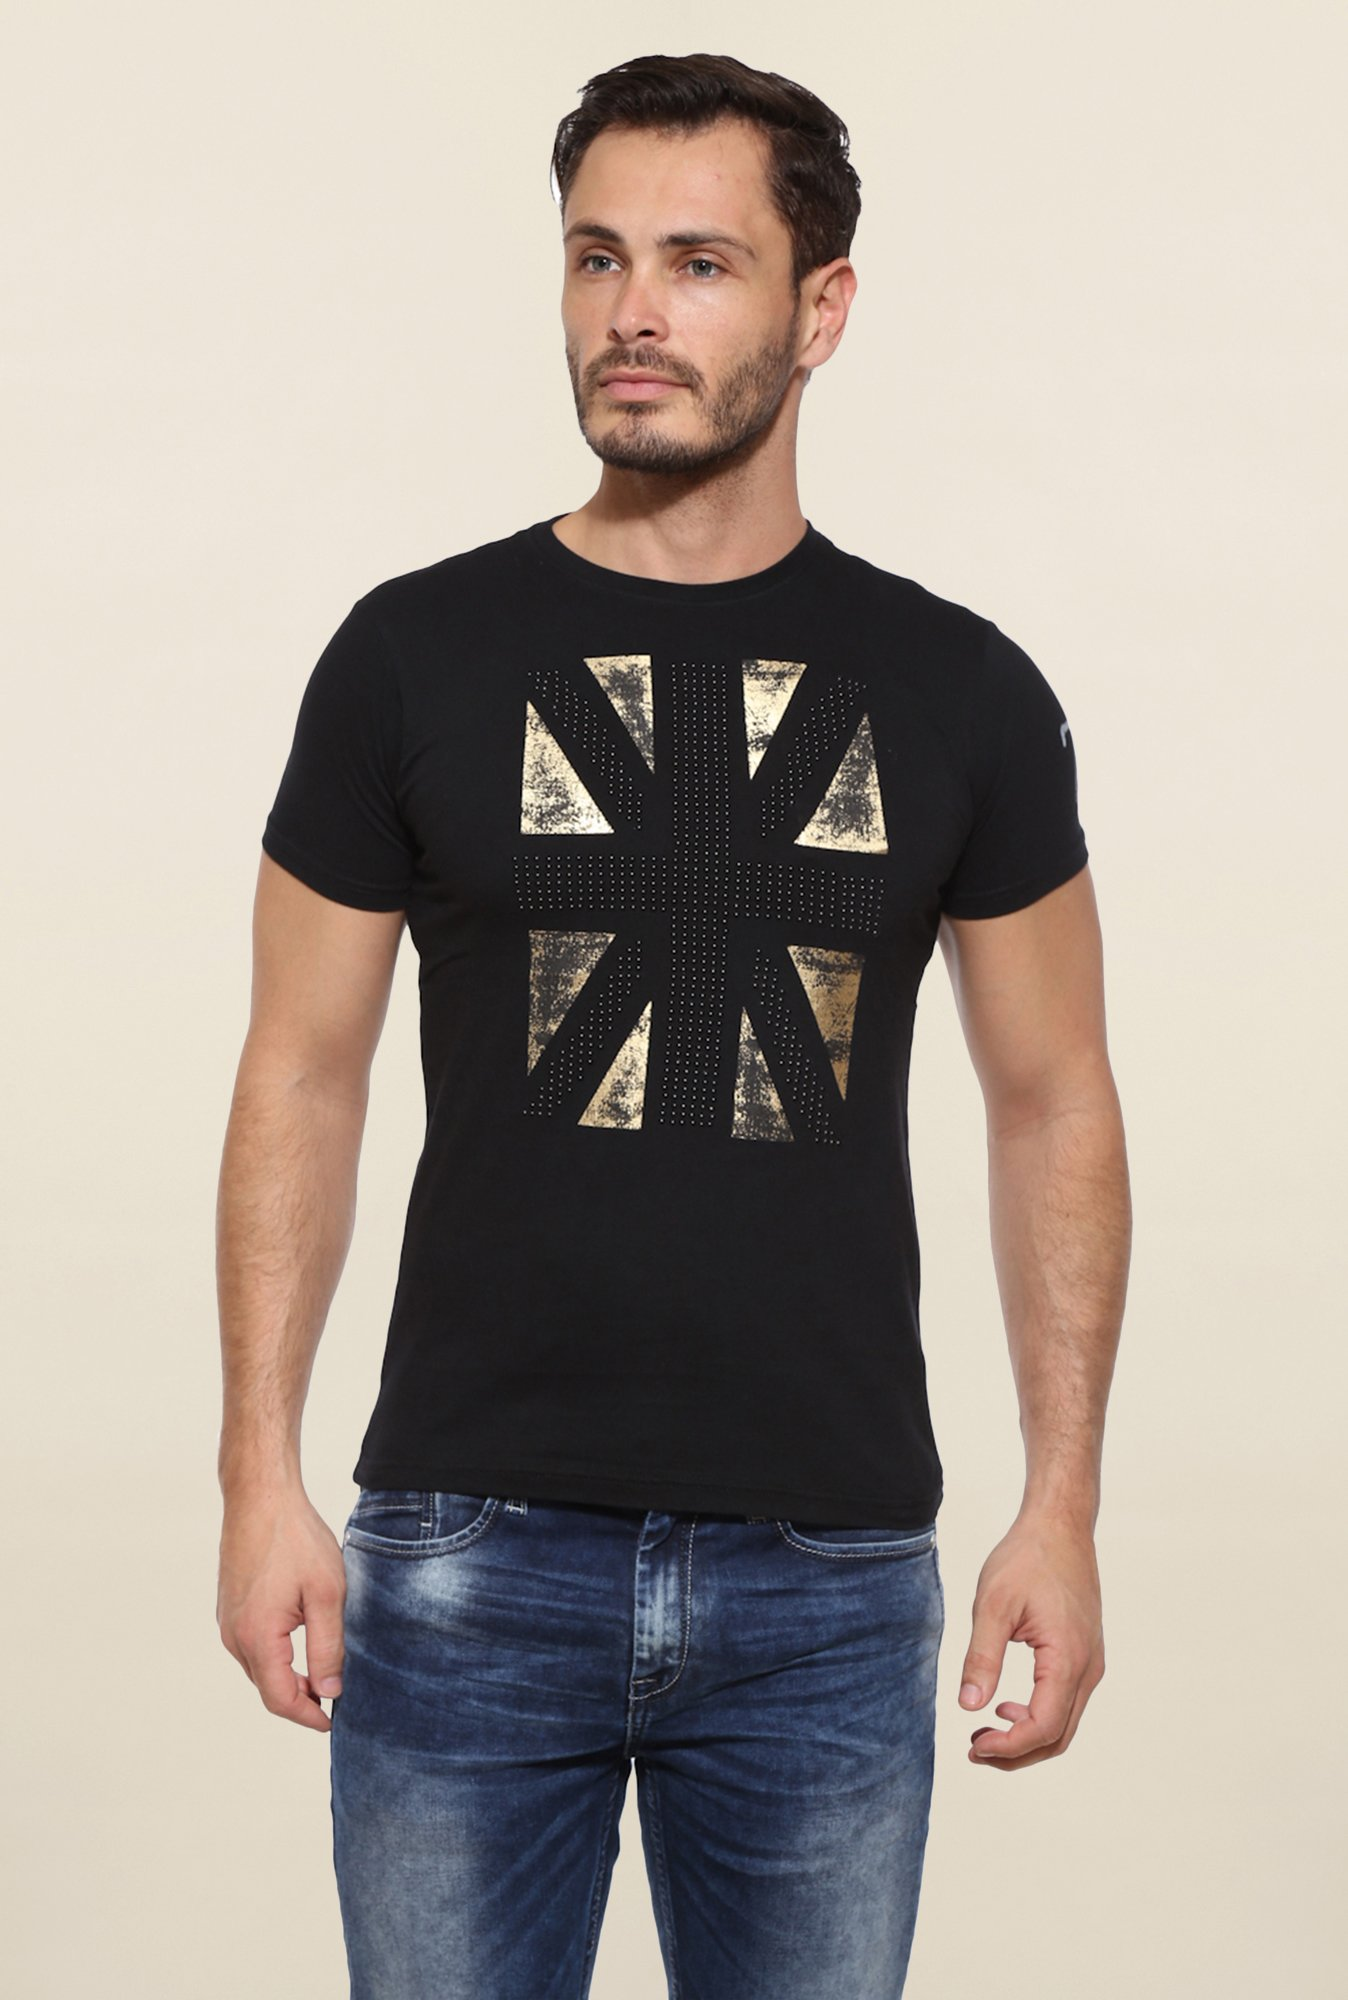 Pepe Jeans Black Printed T Shirt